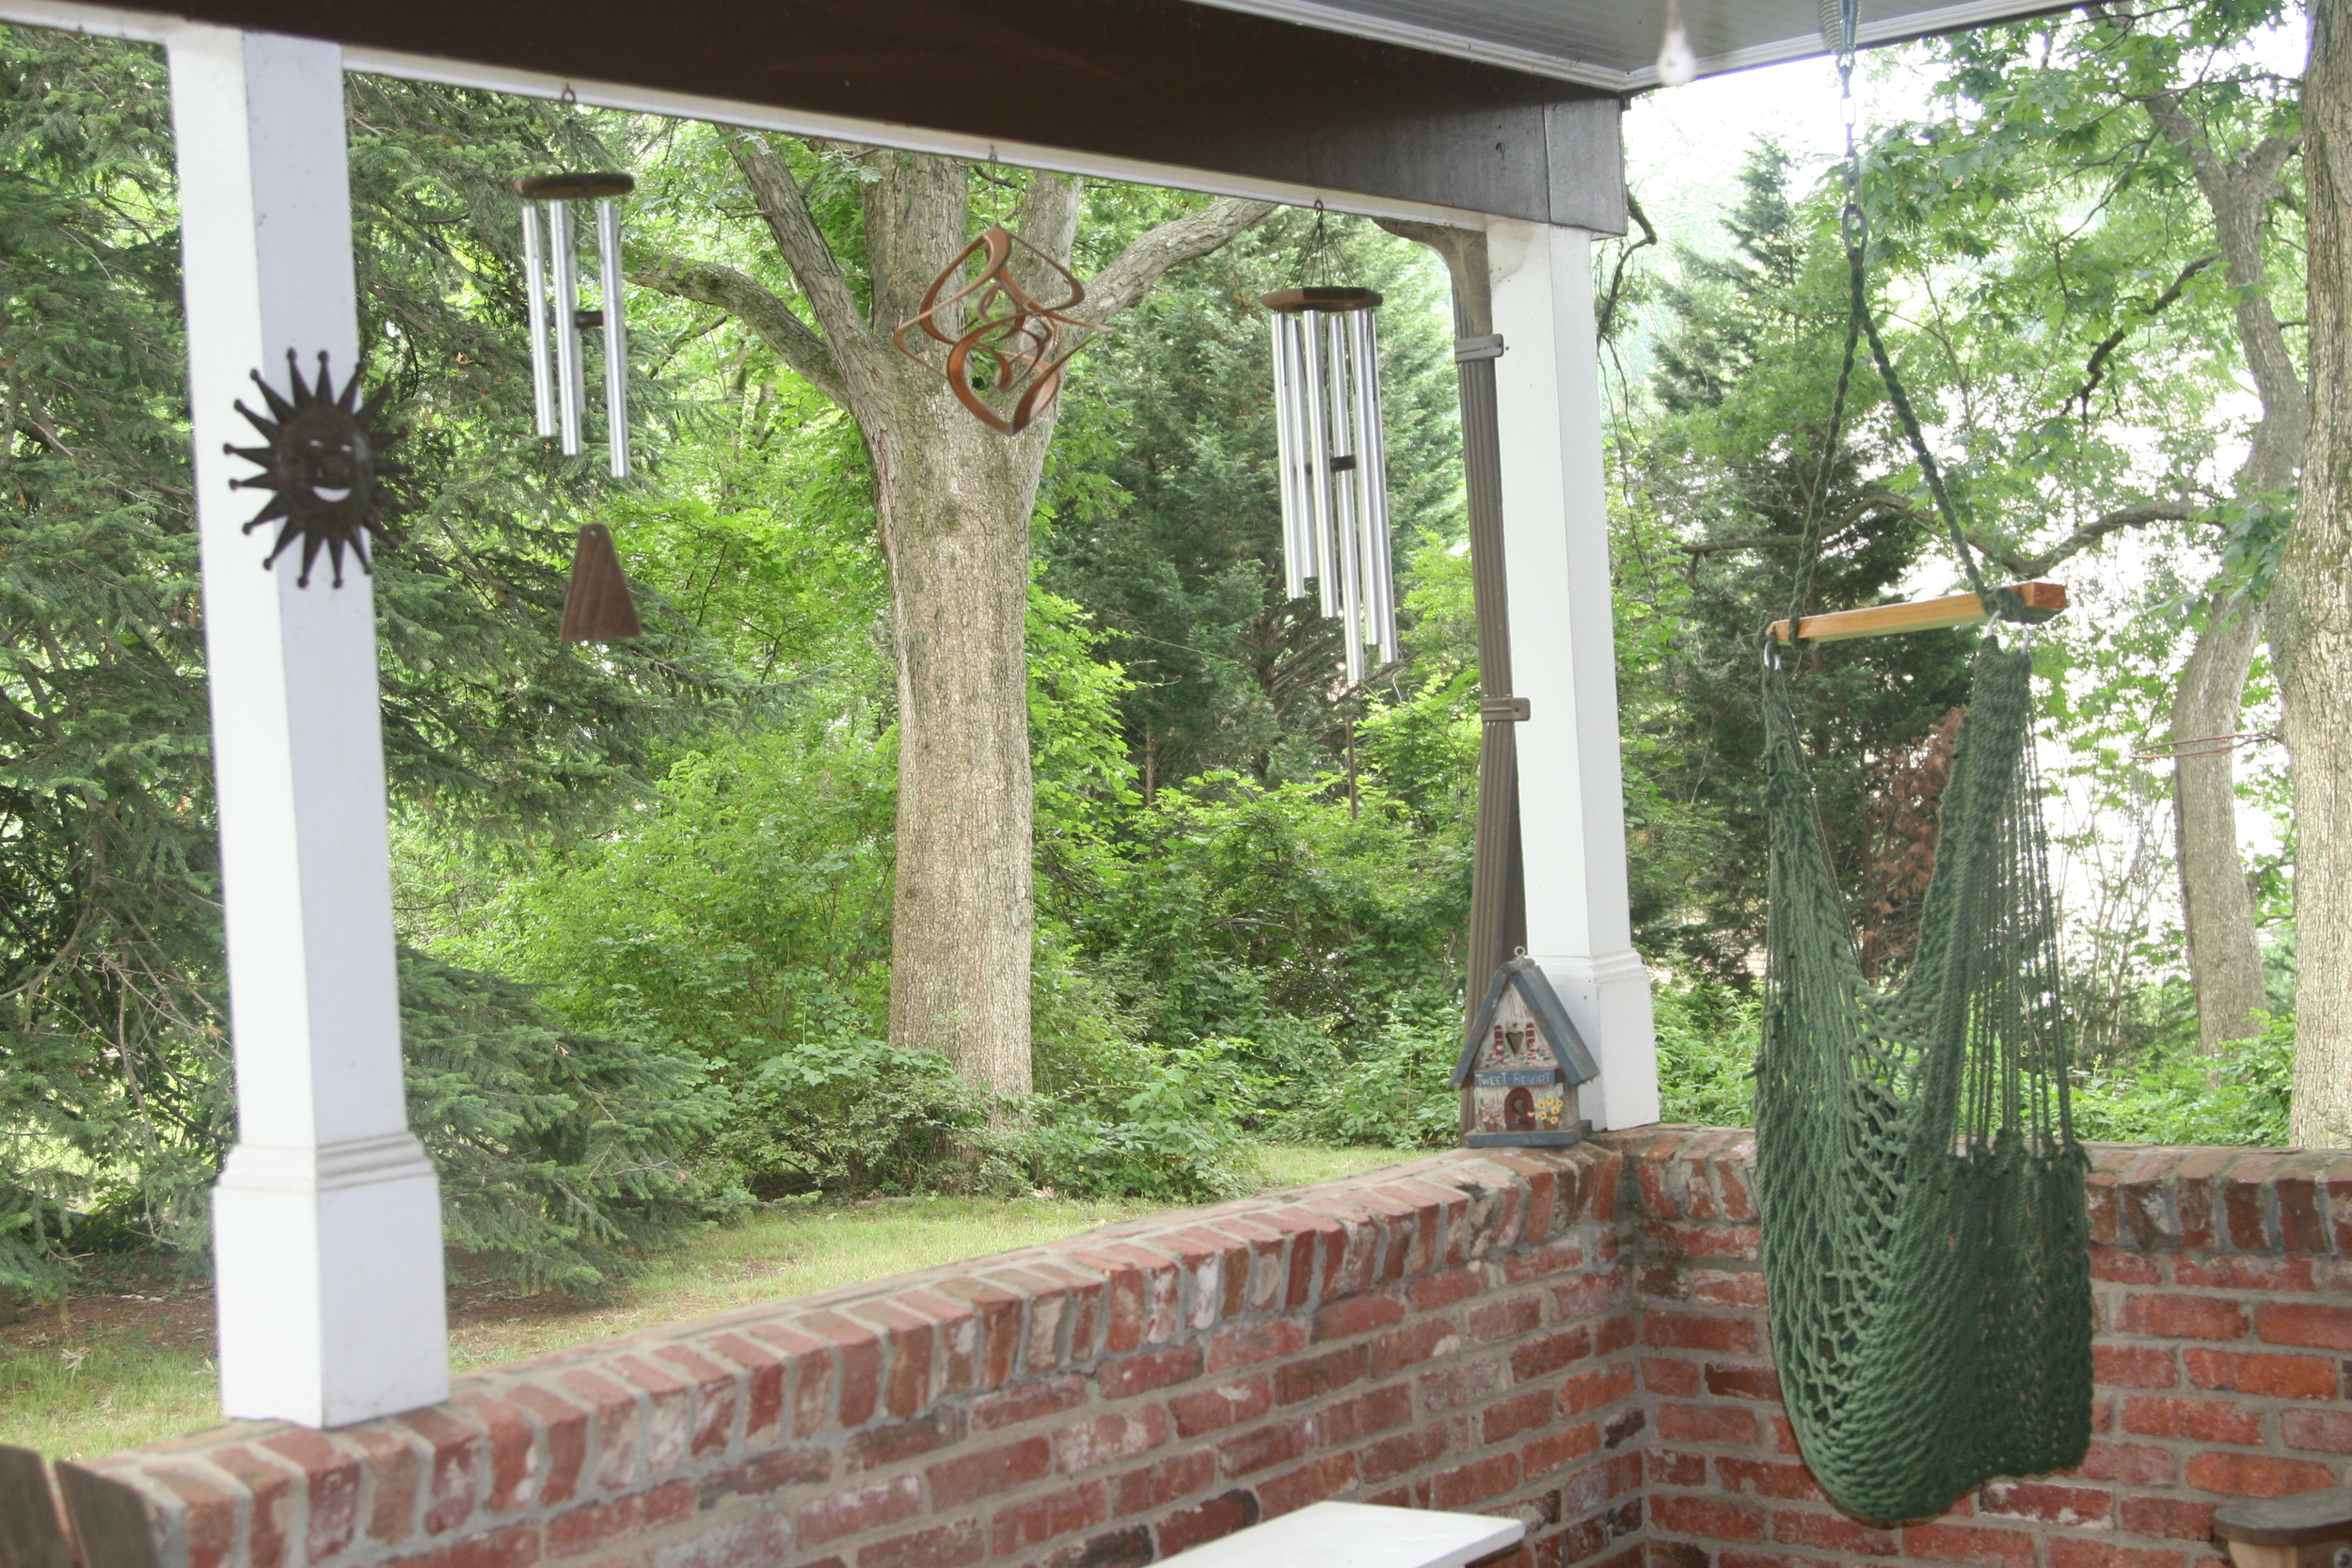 View from my back porch - June 2011